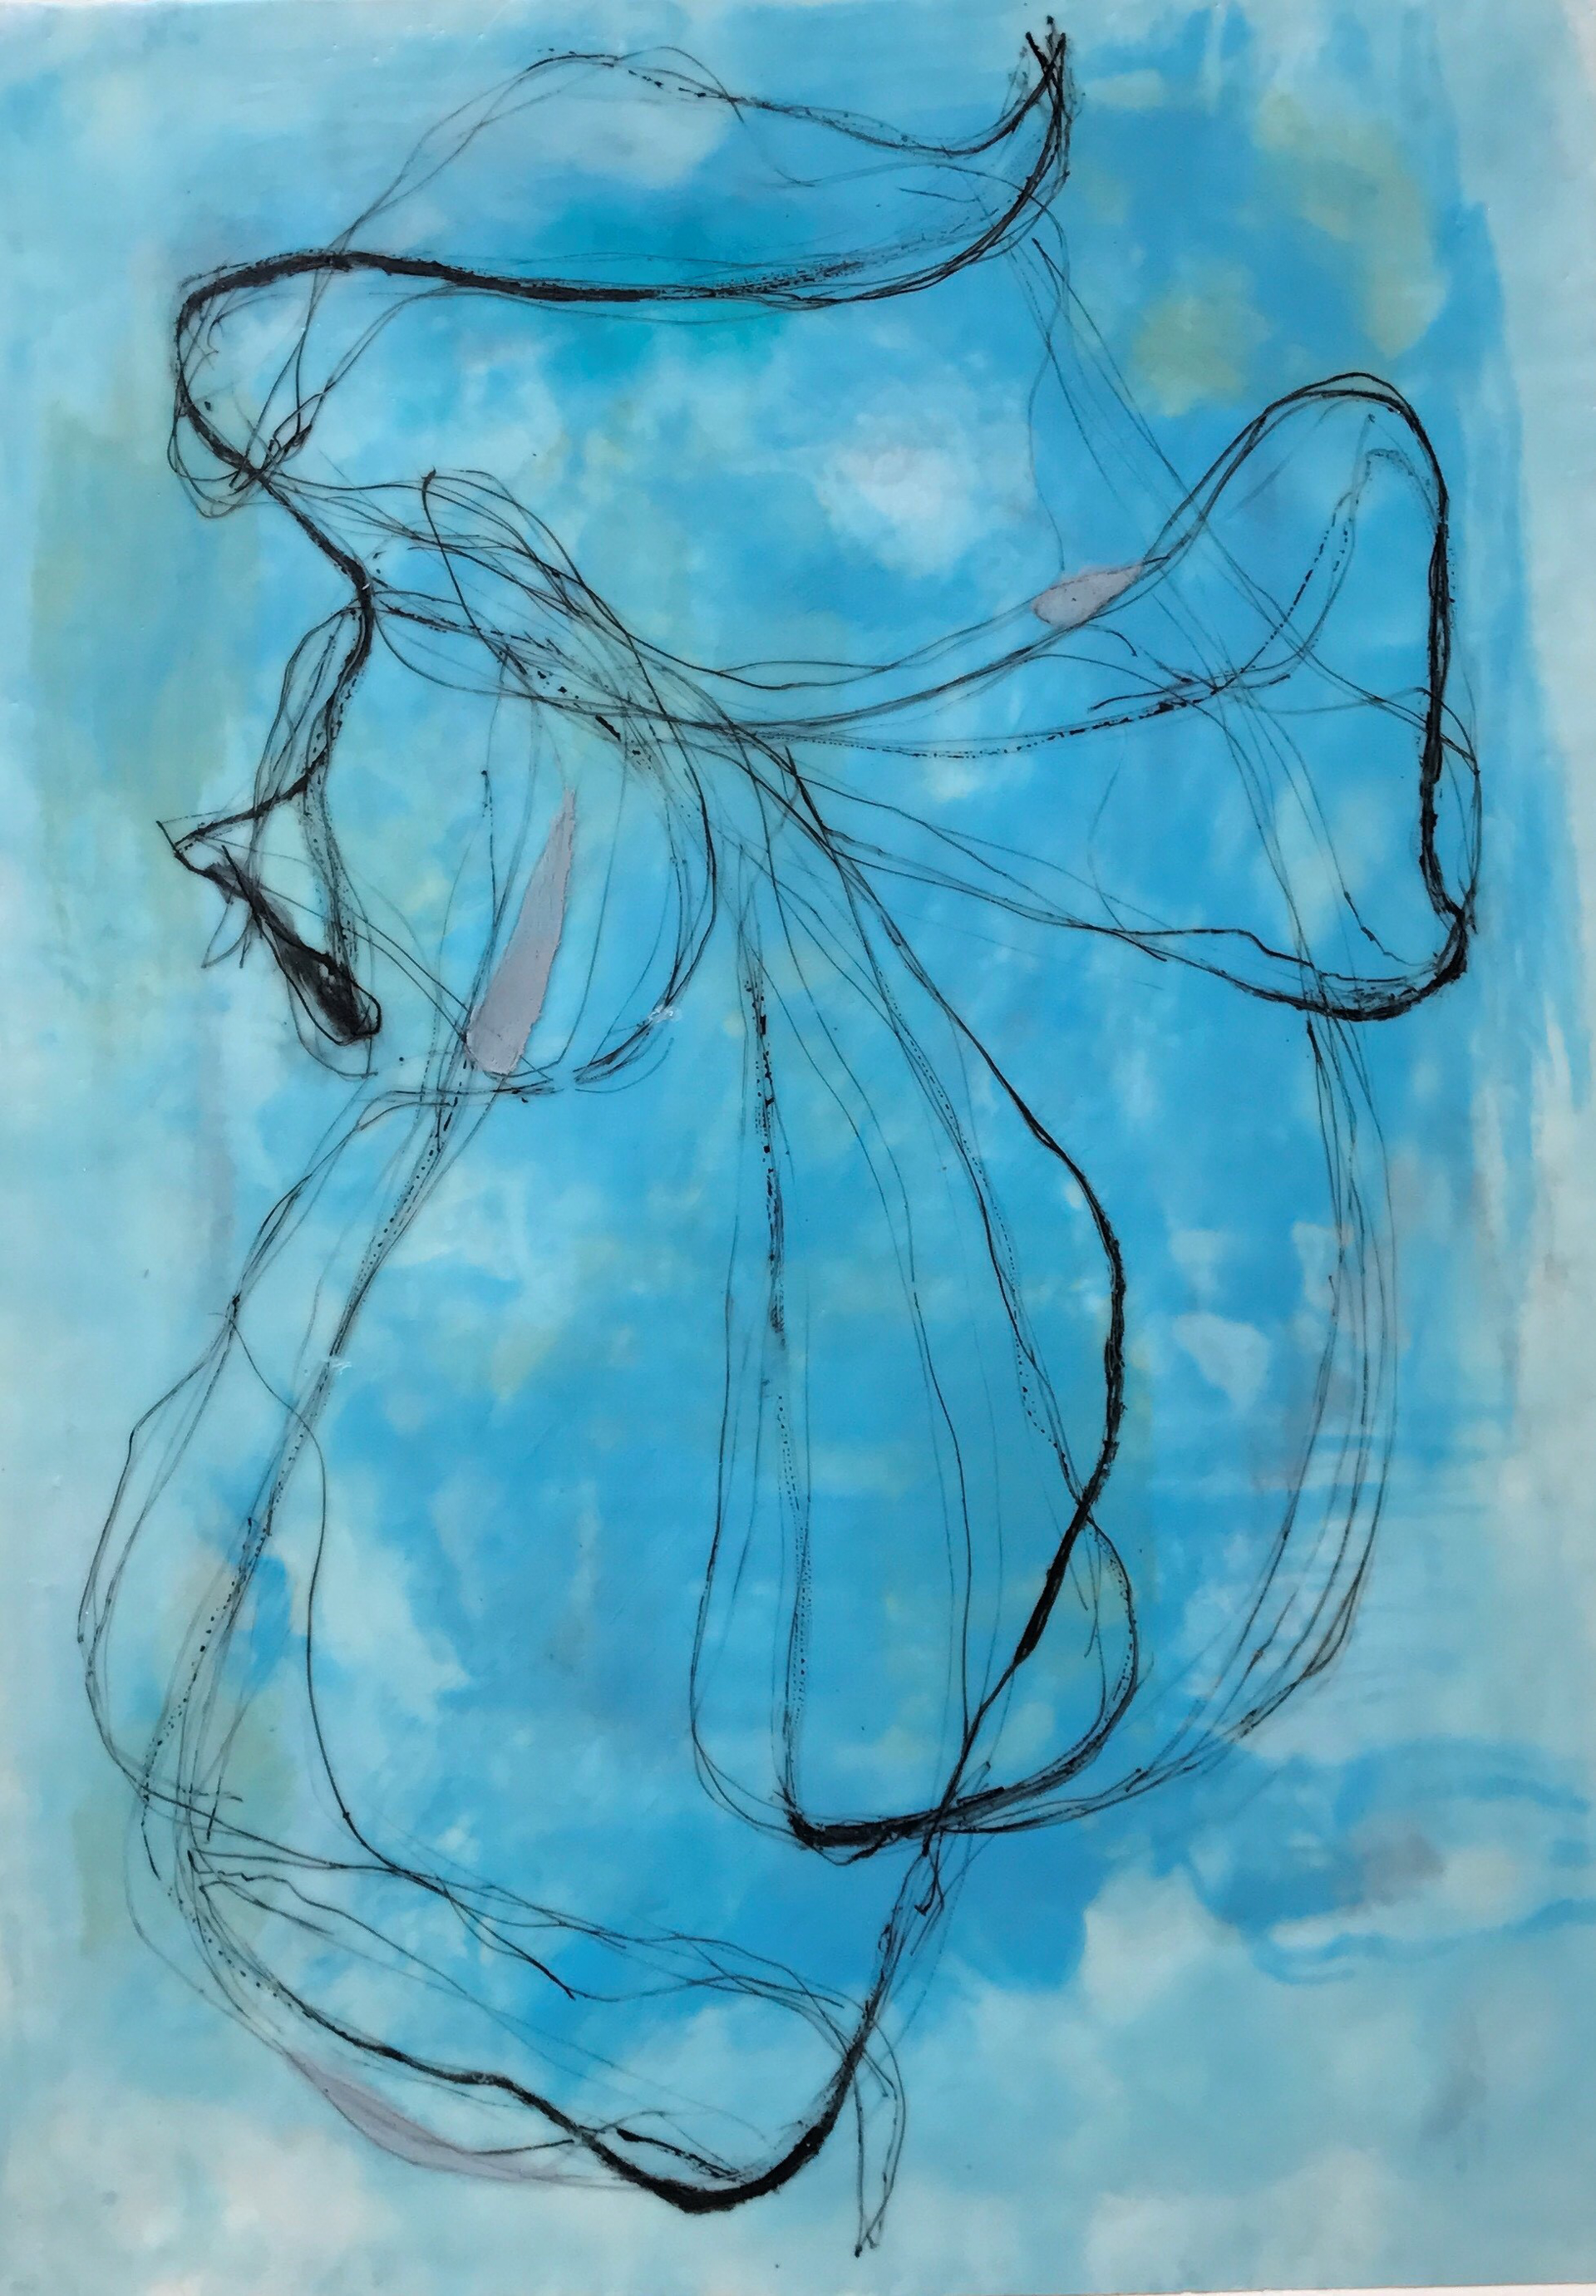 Evanescence 4 by Tracey Adams